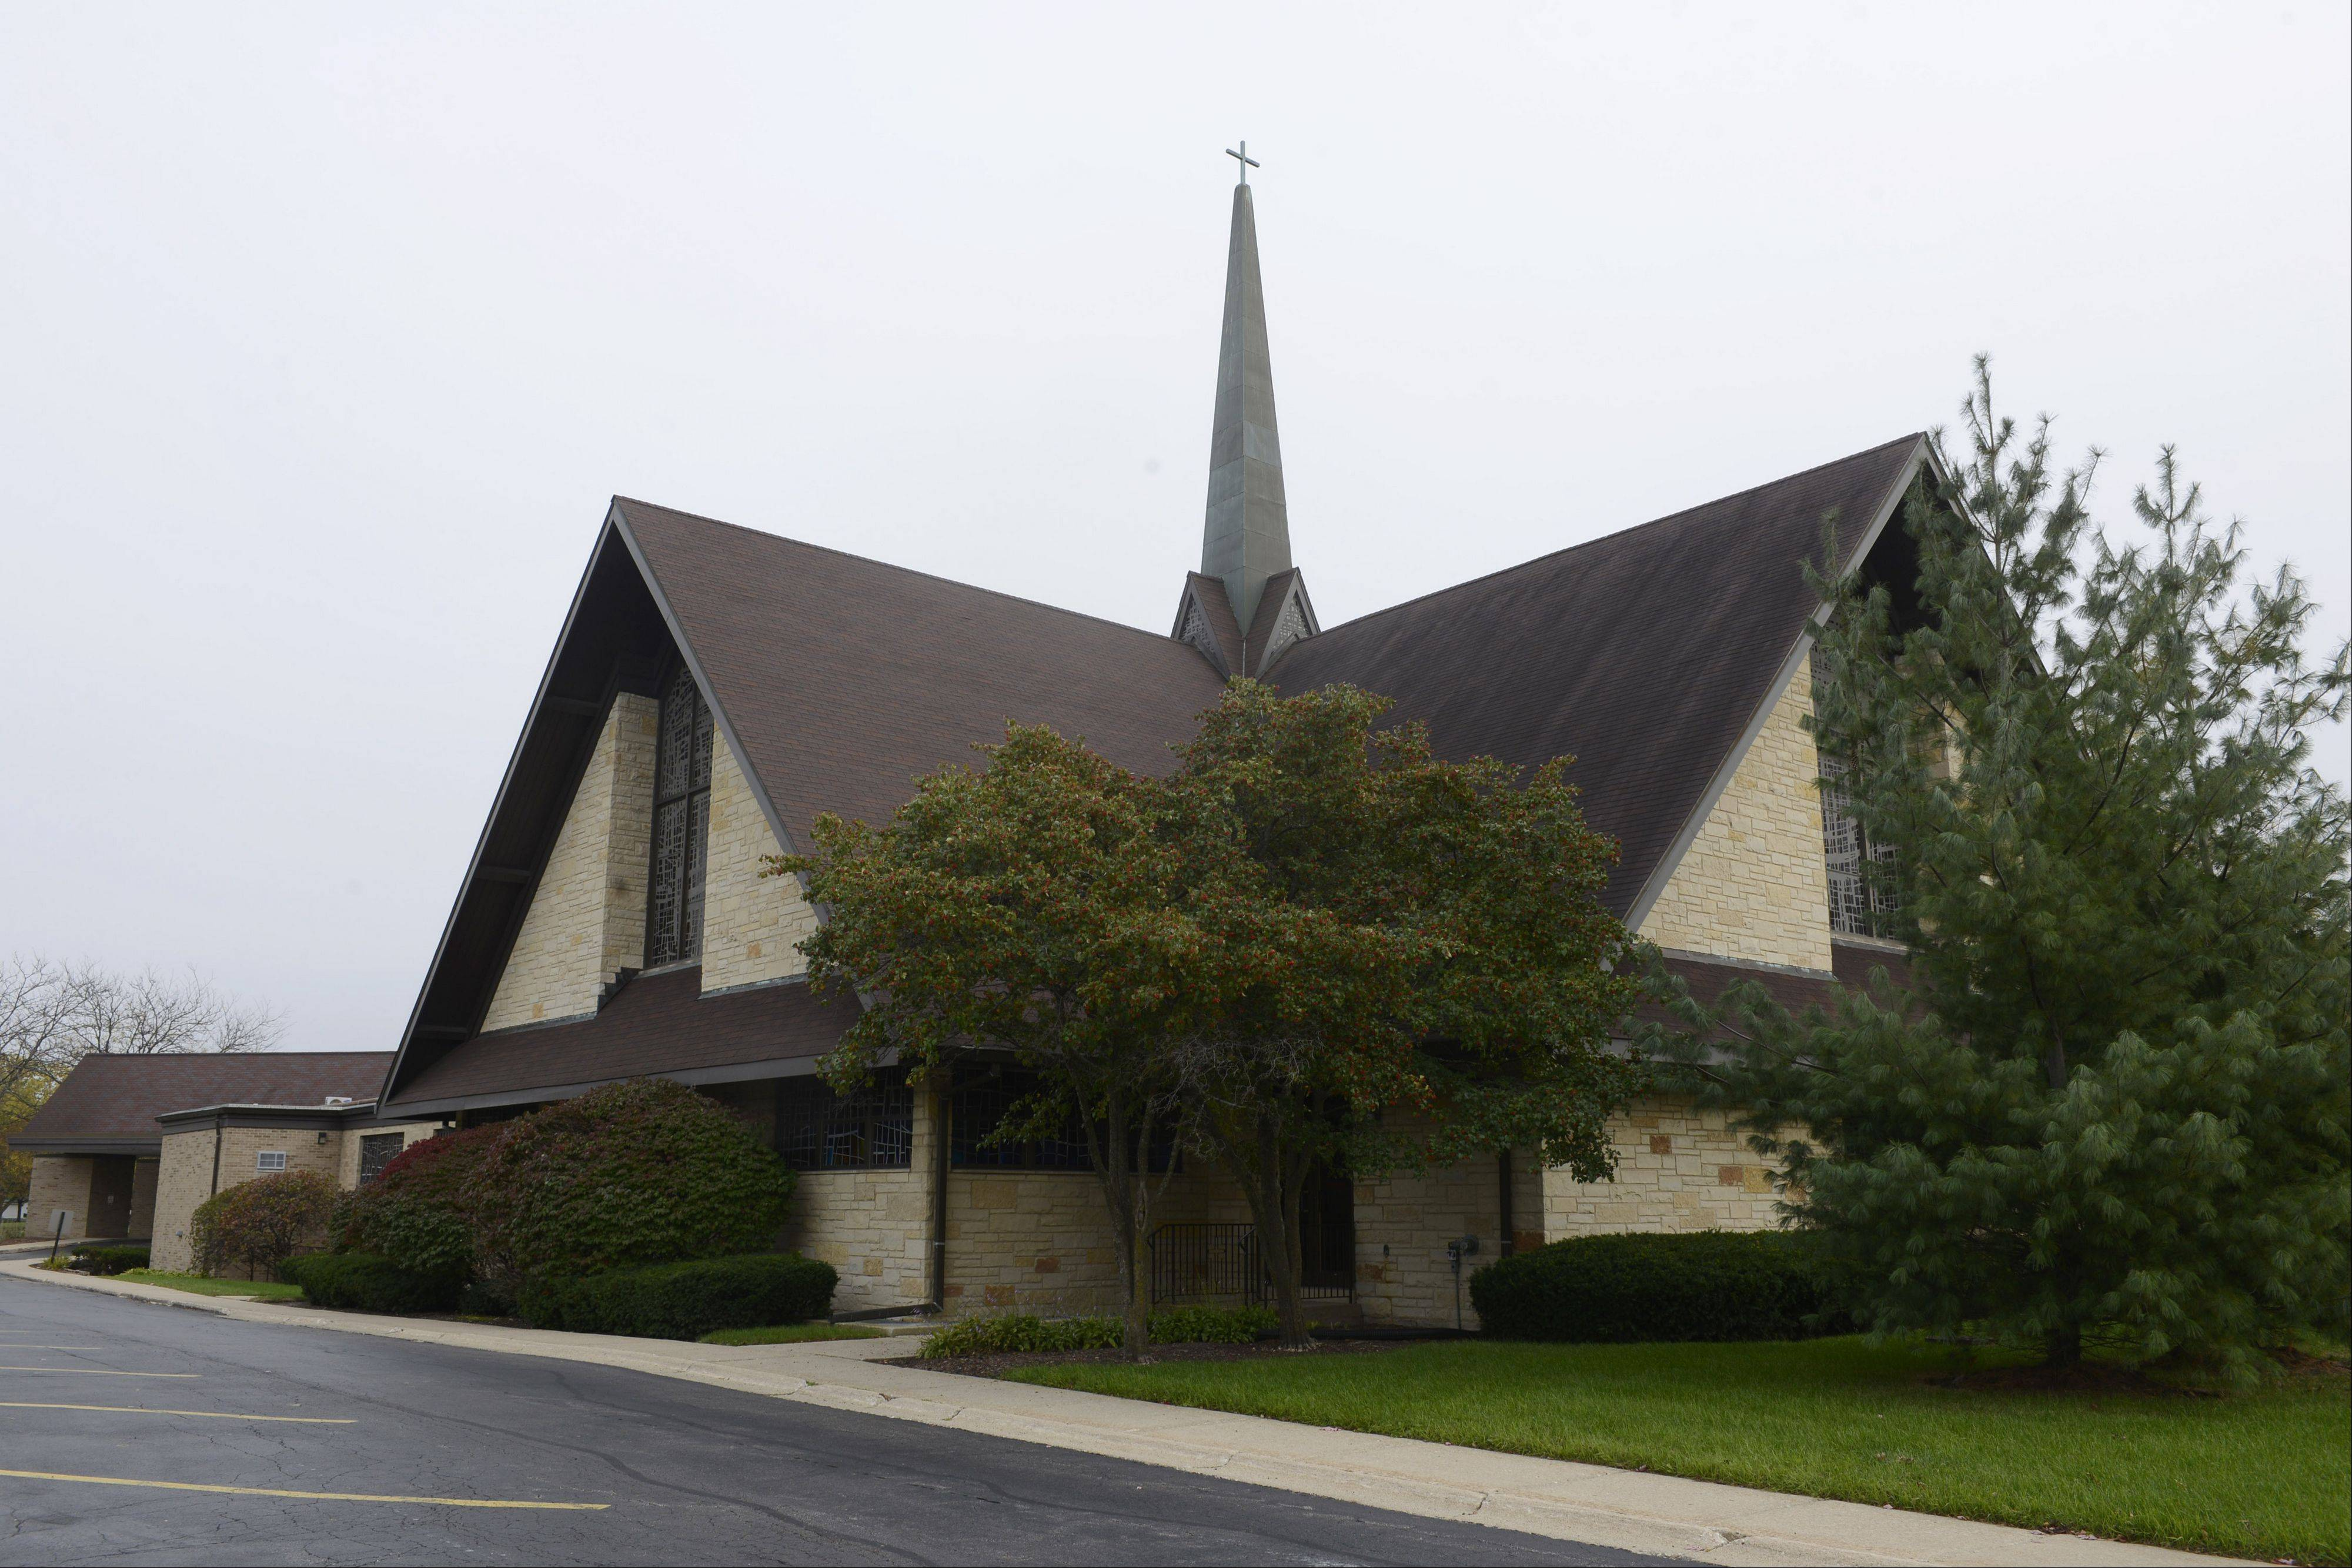 JOE LEWNARD/jlewnard@dailyherald.comOrchard Evangelical Free Church is dropping its controversial plan to tear down eight homes in its Arlington Heights neighborhood to make room for additional parking. Church leaders made the decision after a meeting Sunday night.